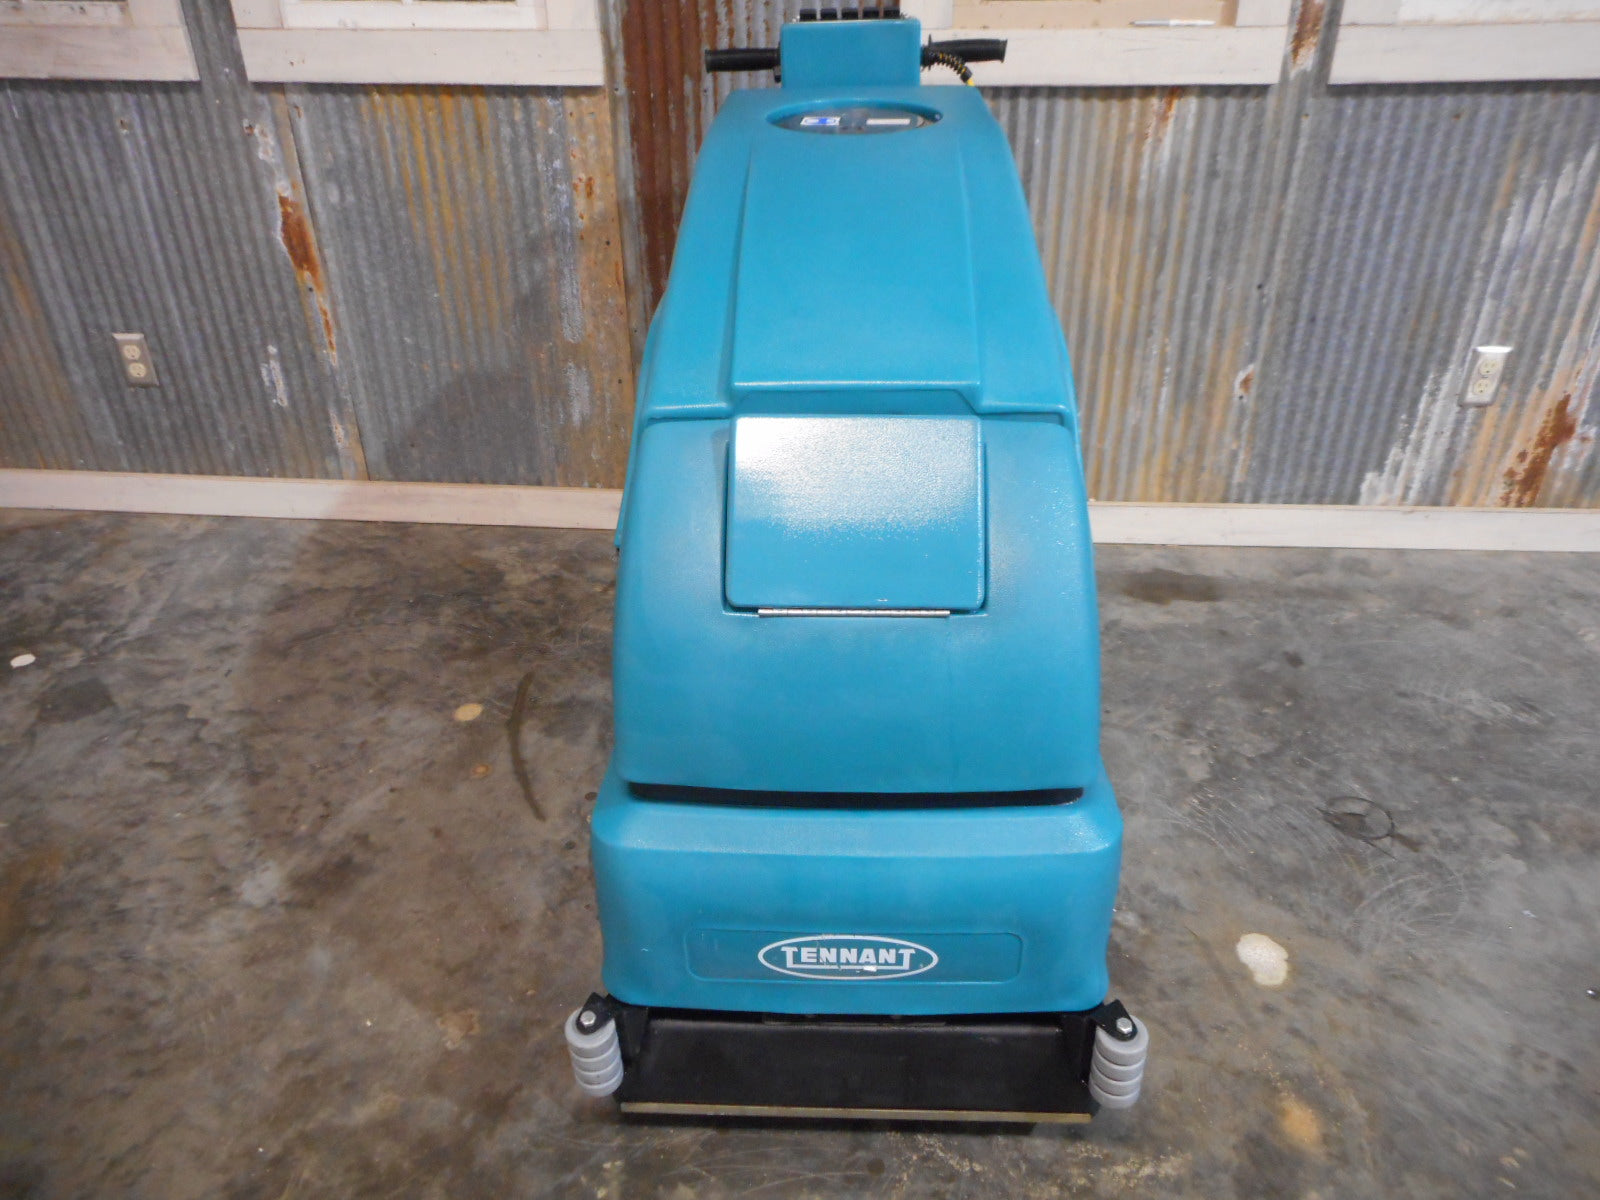 Tennant 1520 Carpet Extractor Cleaner